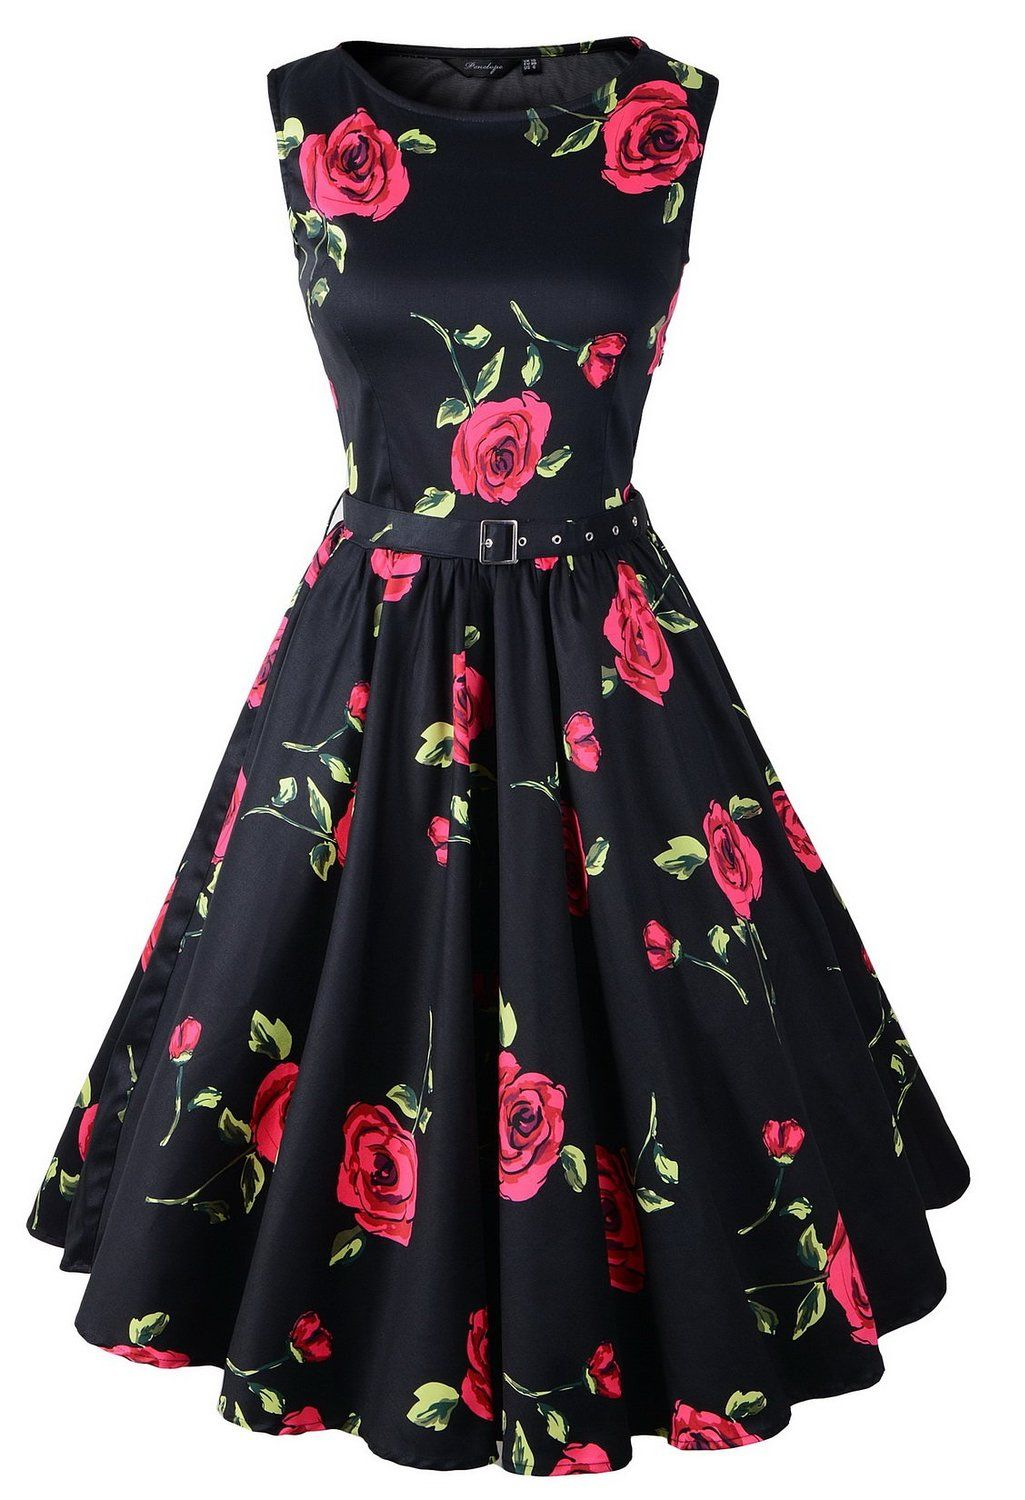 Hepburn style s floral rose pattern swing circle party dress at